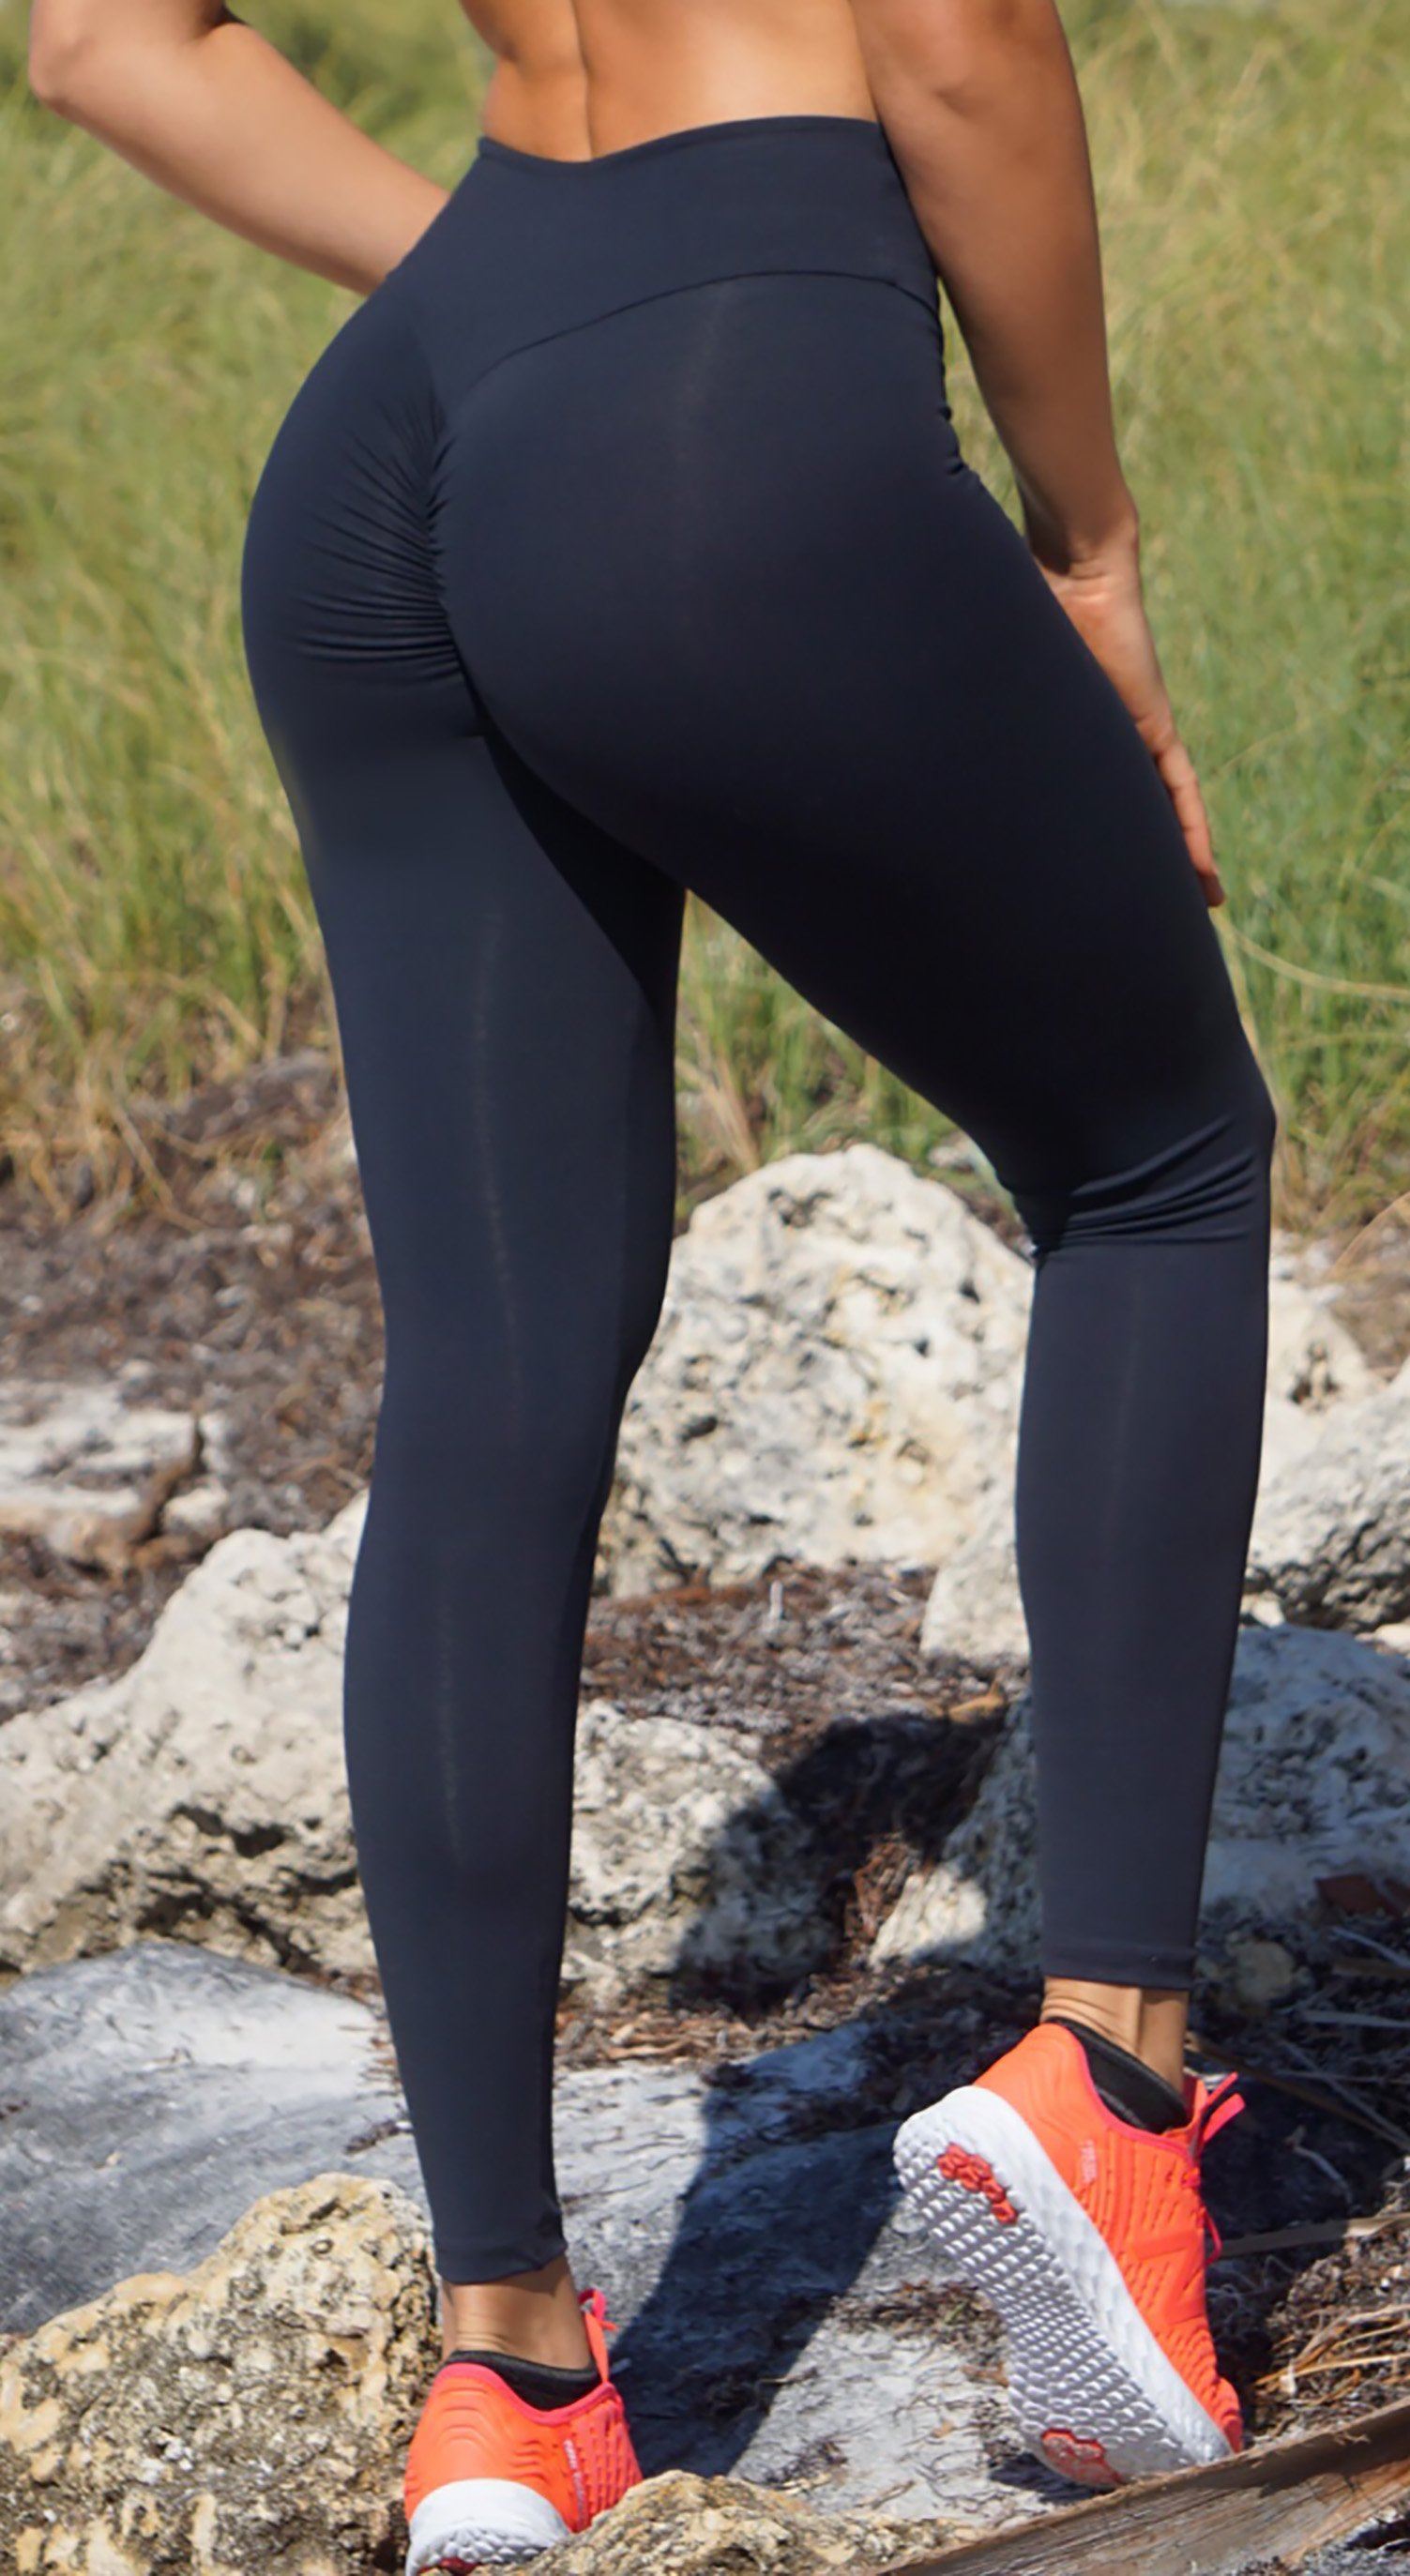 dde2f3de7b6e9a Canoan - Workout Legging - Zero Flaws High Waist Scrunch Booty Lift! Black